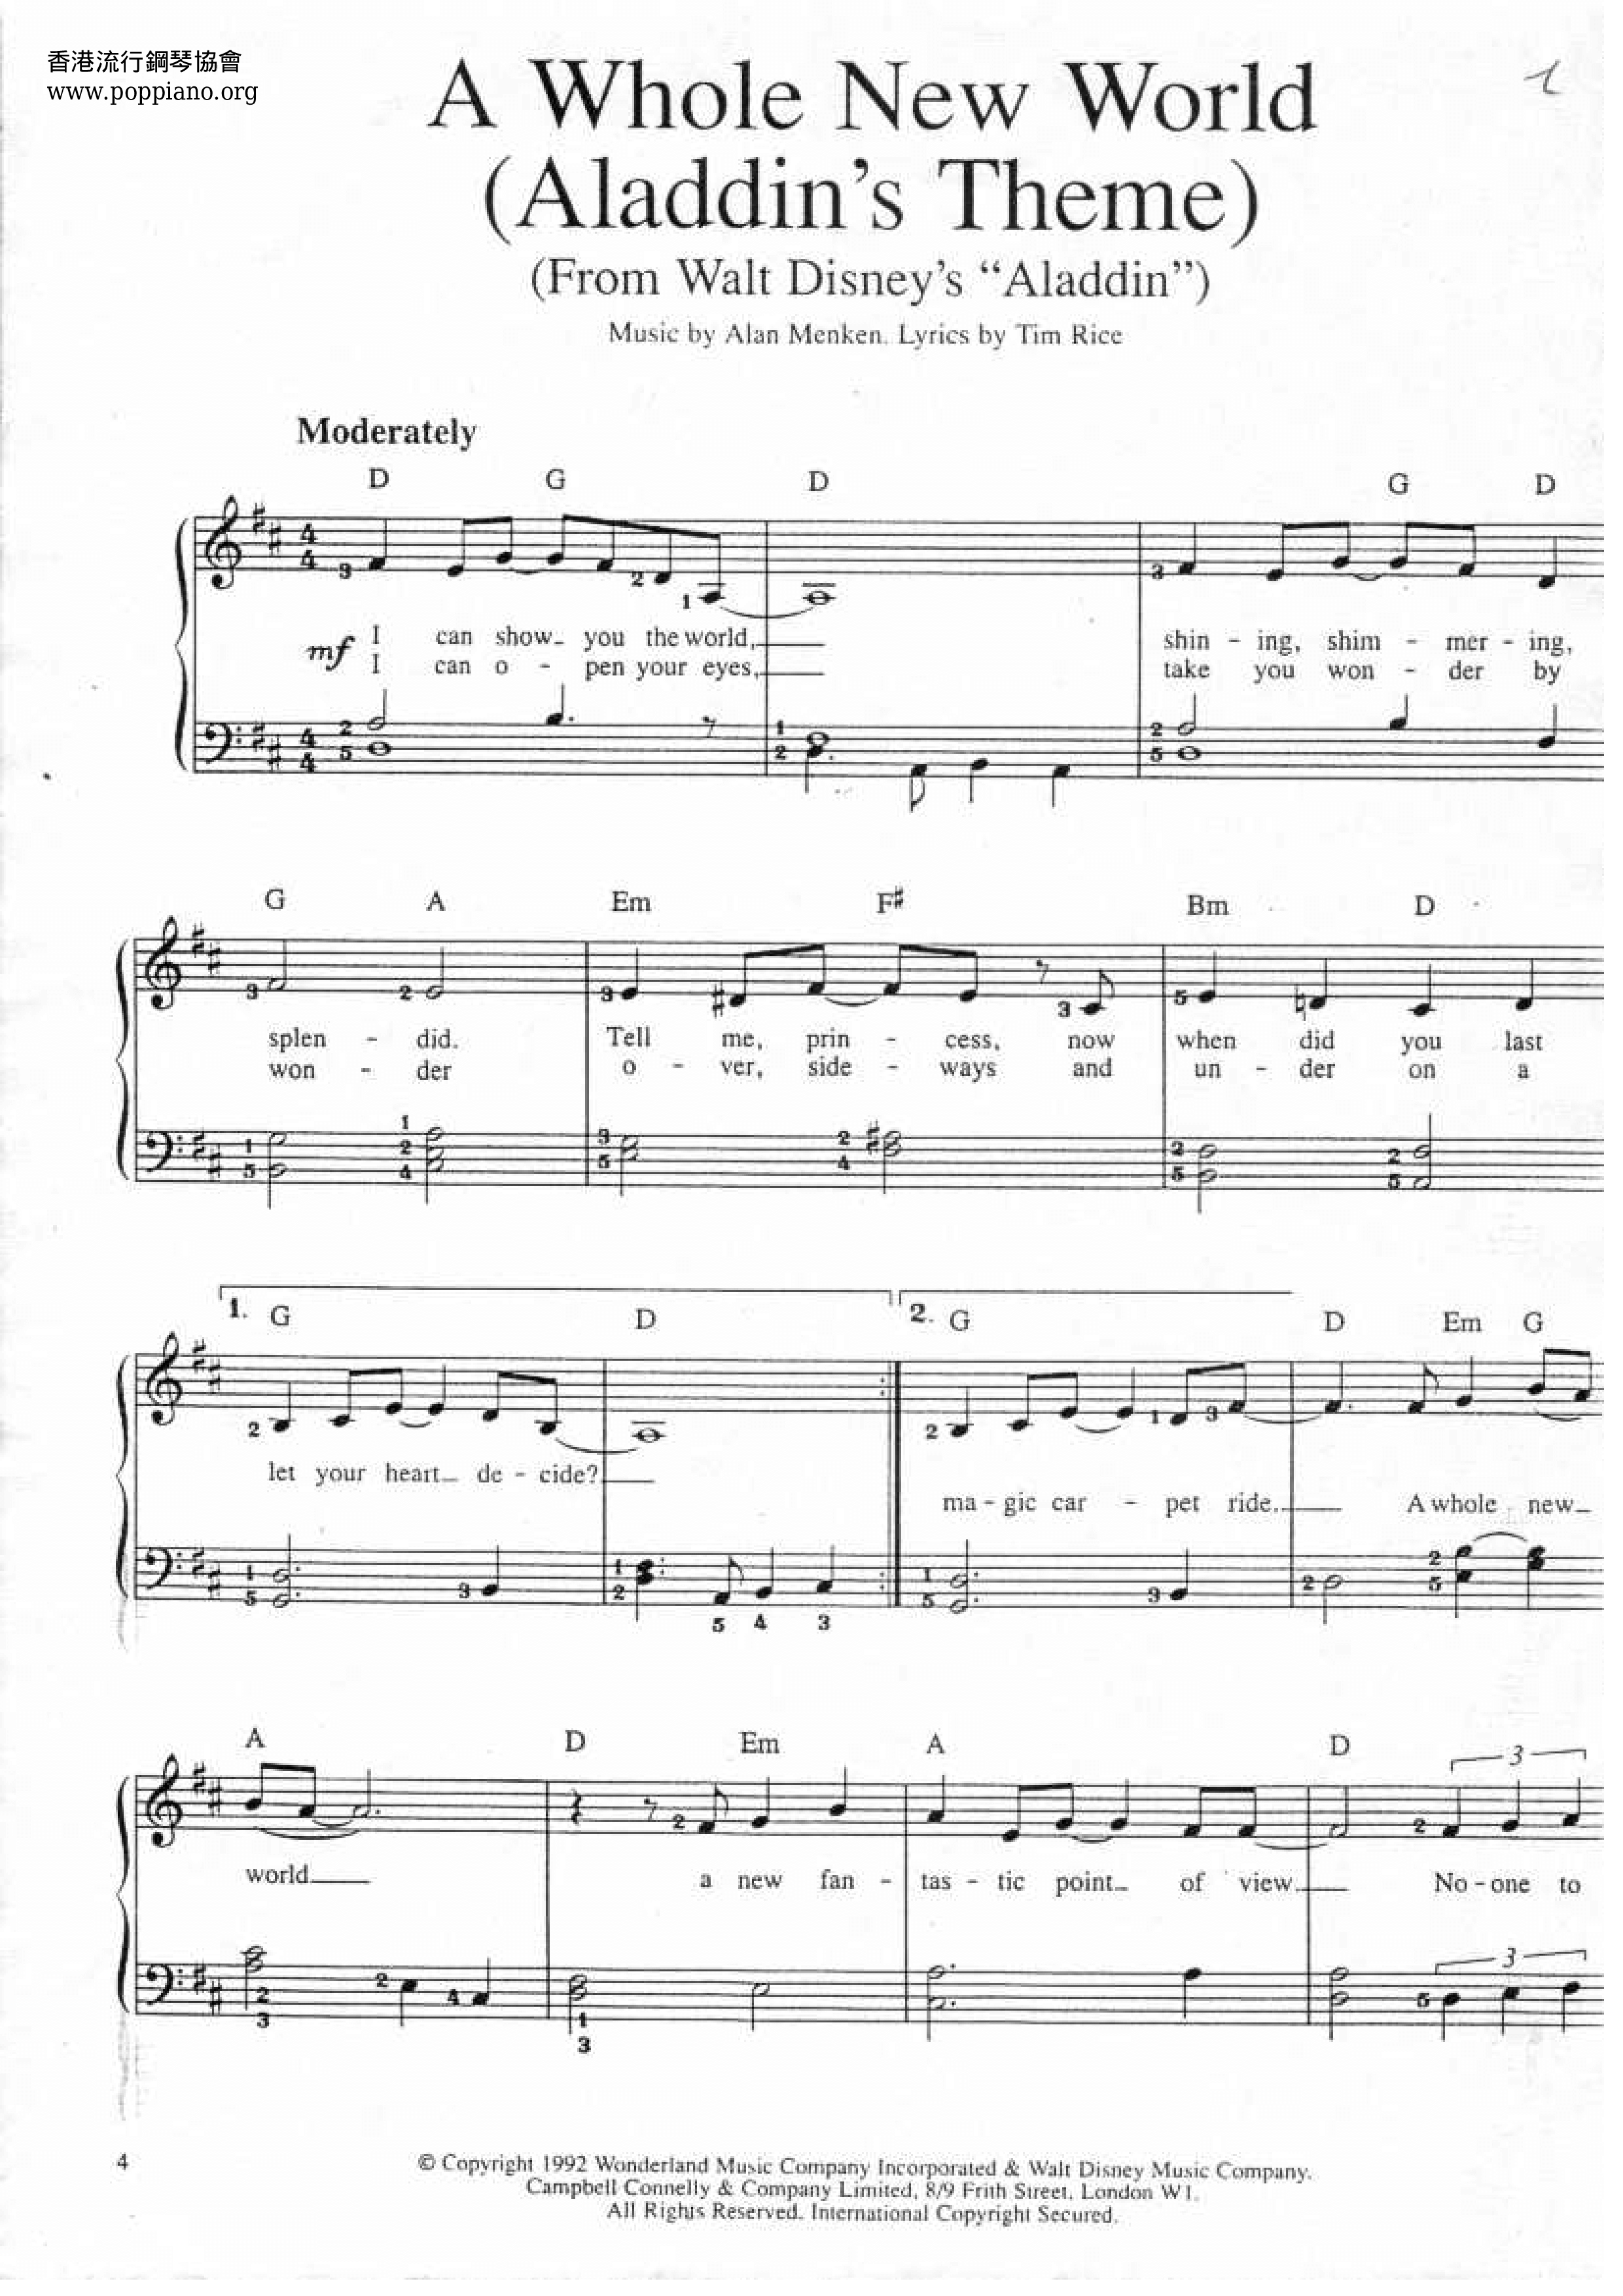 a whole new world sheet music free download